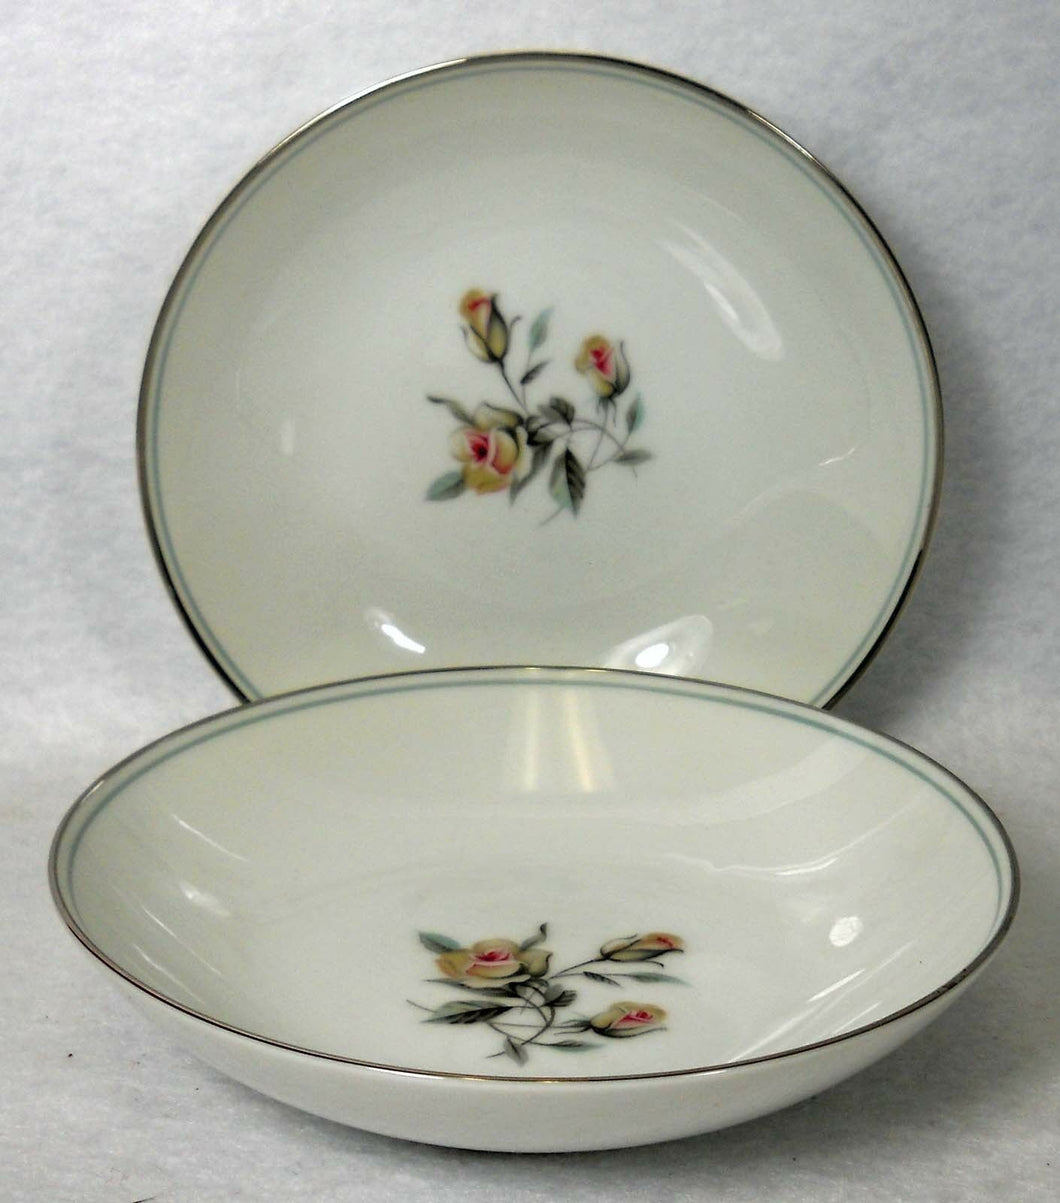 NORITAKE china MARGOT #5605 Fruit Dessert or Berry Bowl - Set of Two (2) 5-5/8